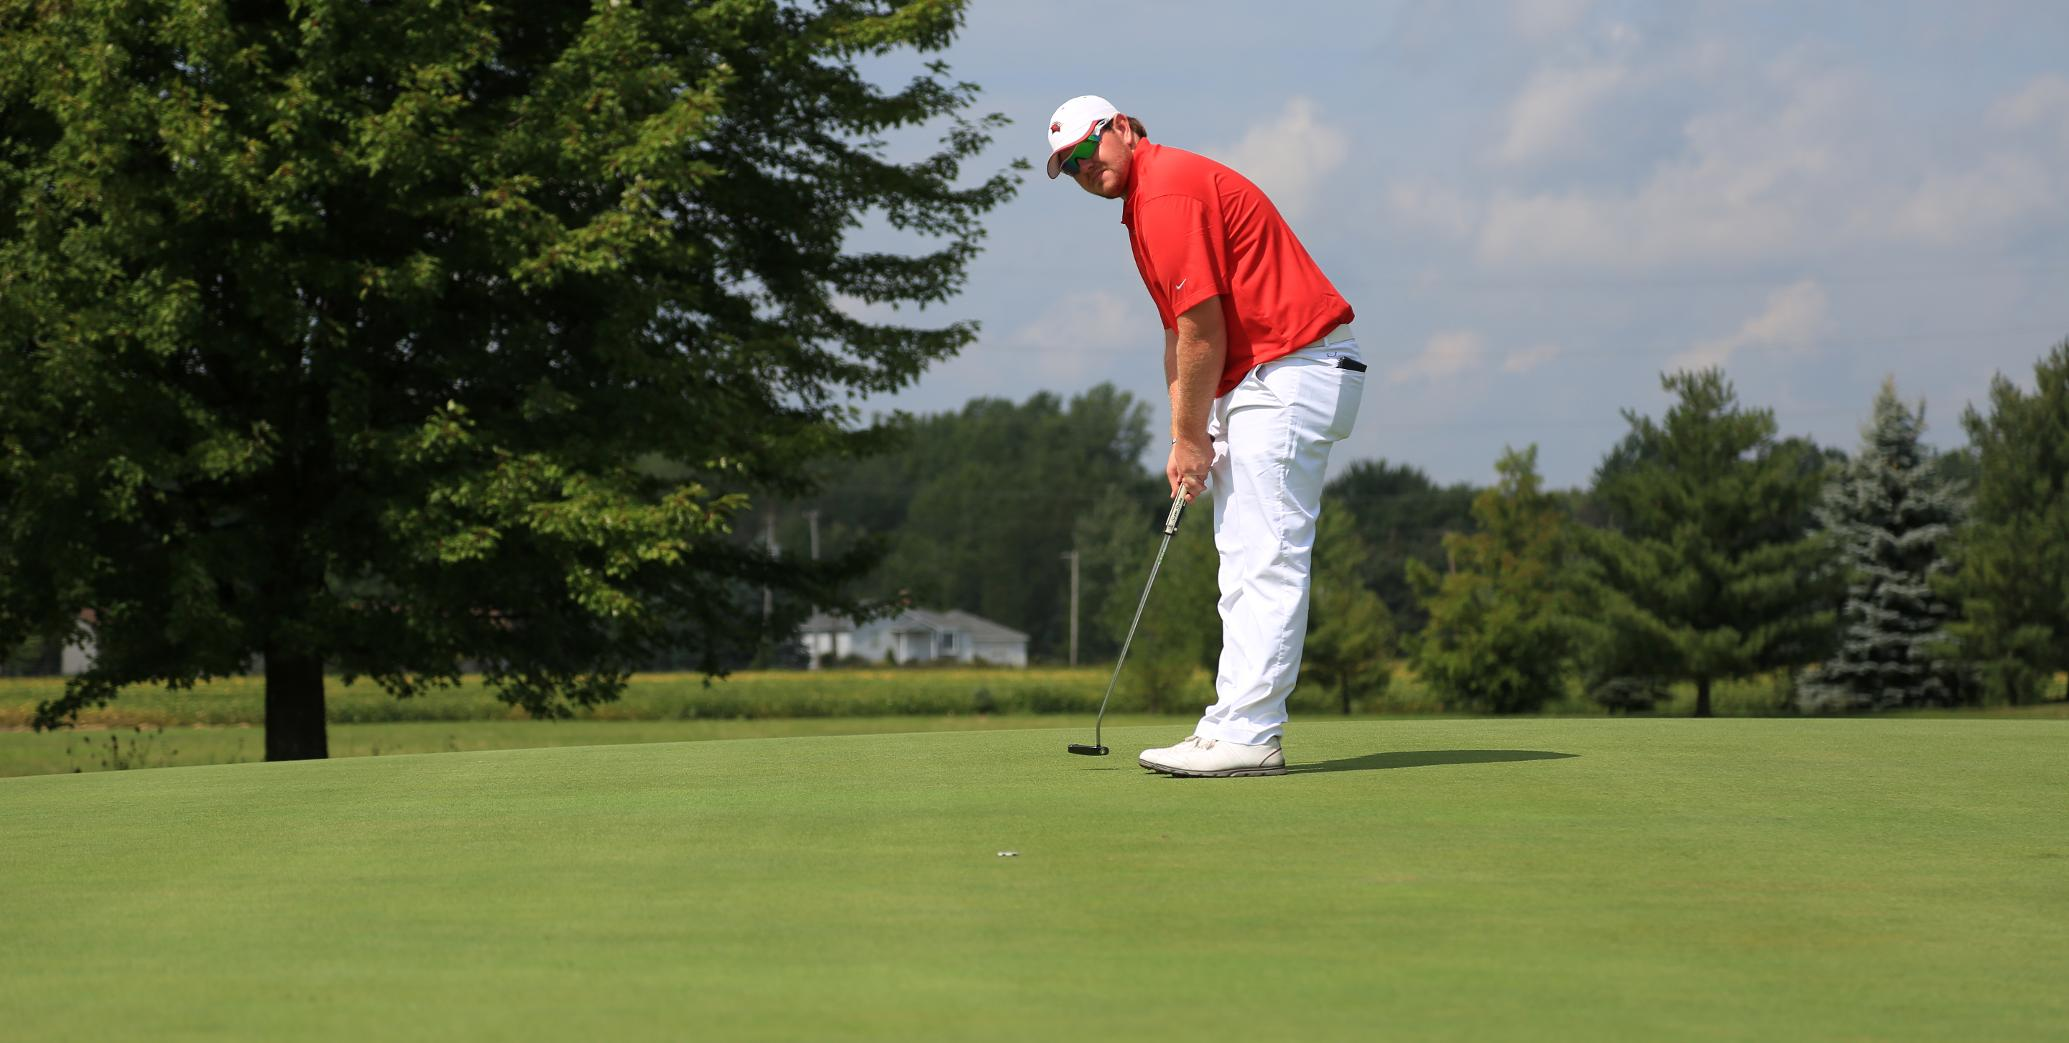 Mason Motte had the low score of 74 for the Cardinals in the first round...